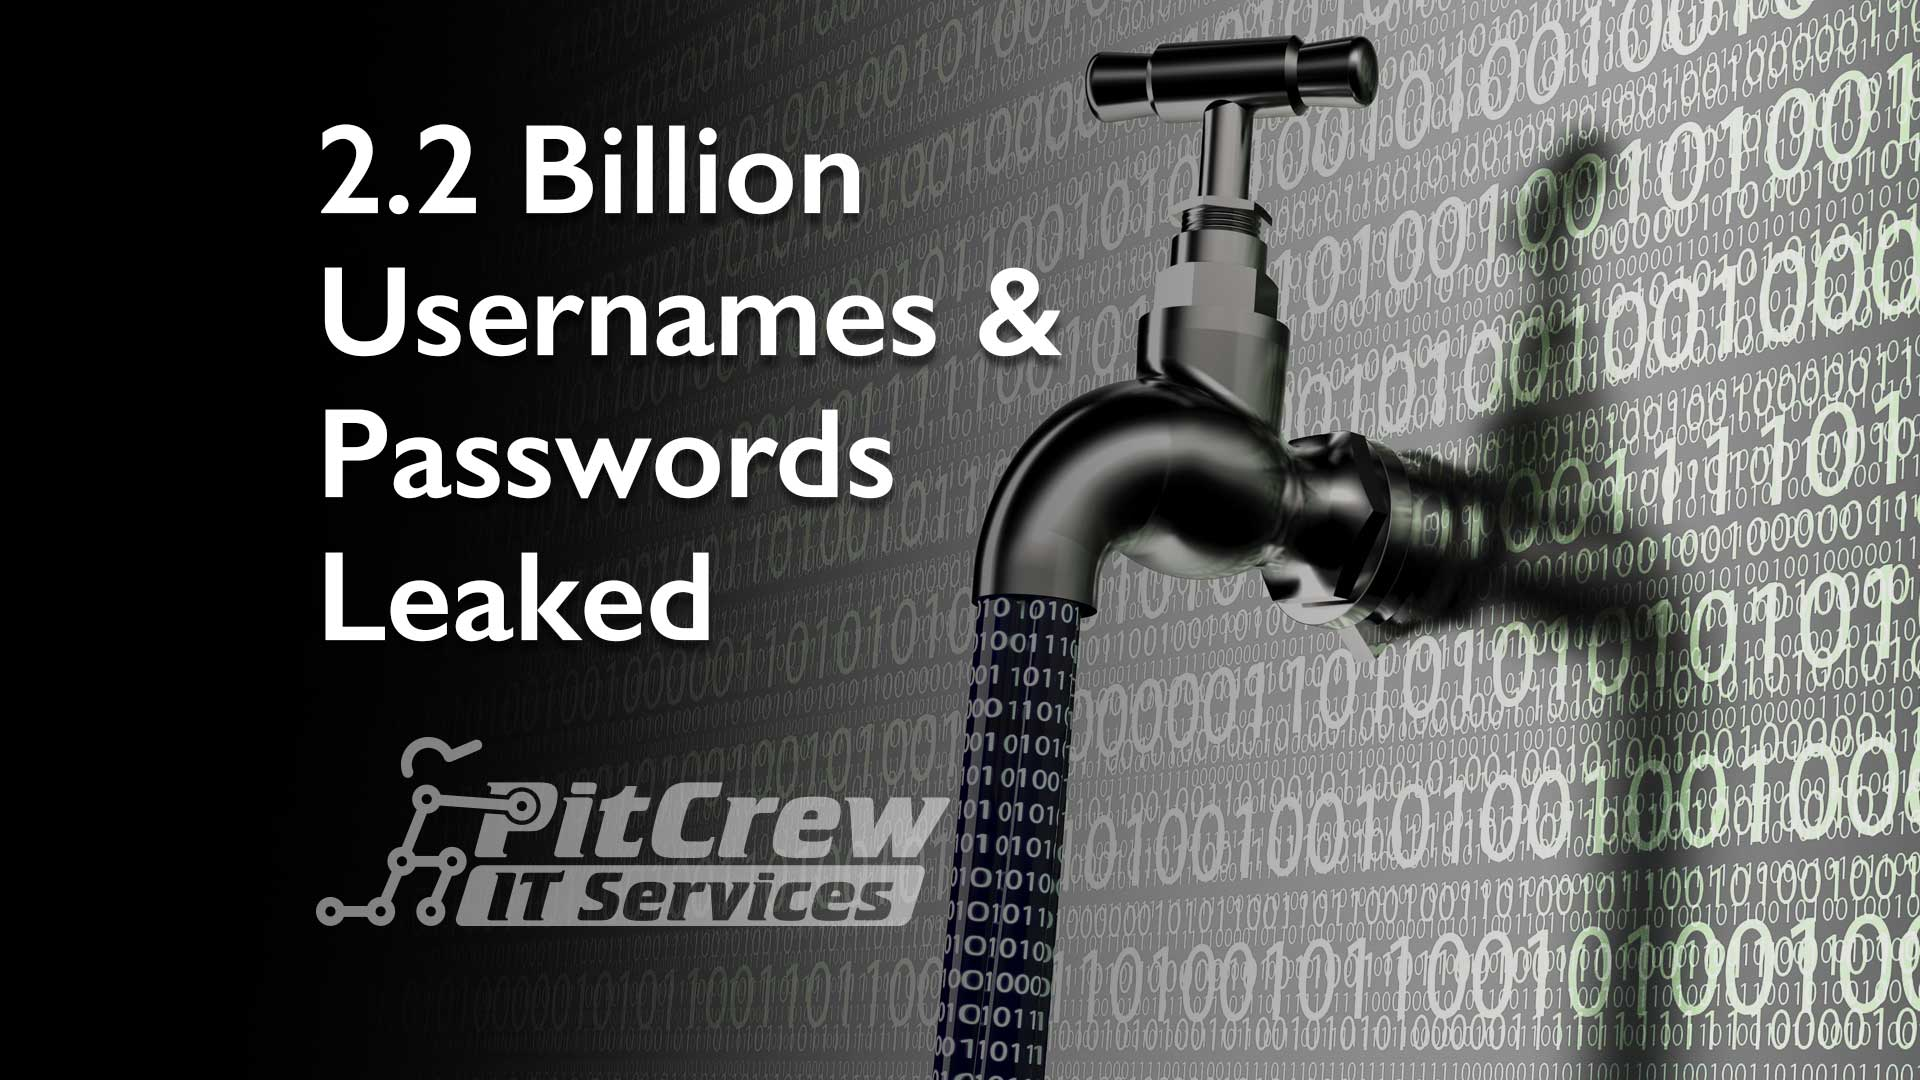 2.2 Billion Usernames & Passwords Leaked